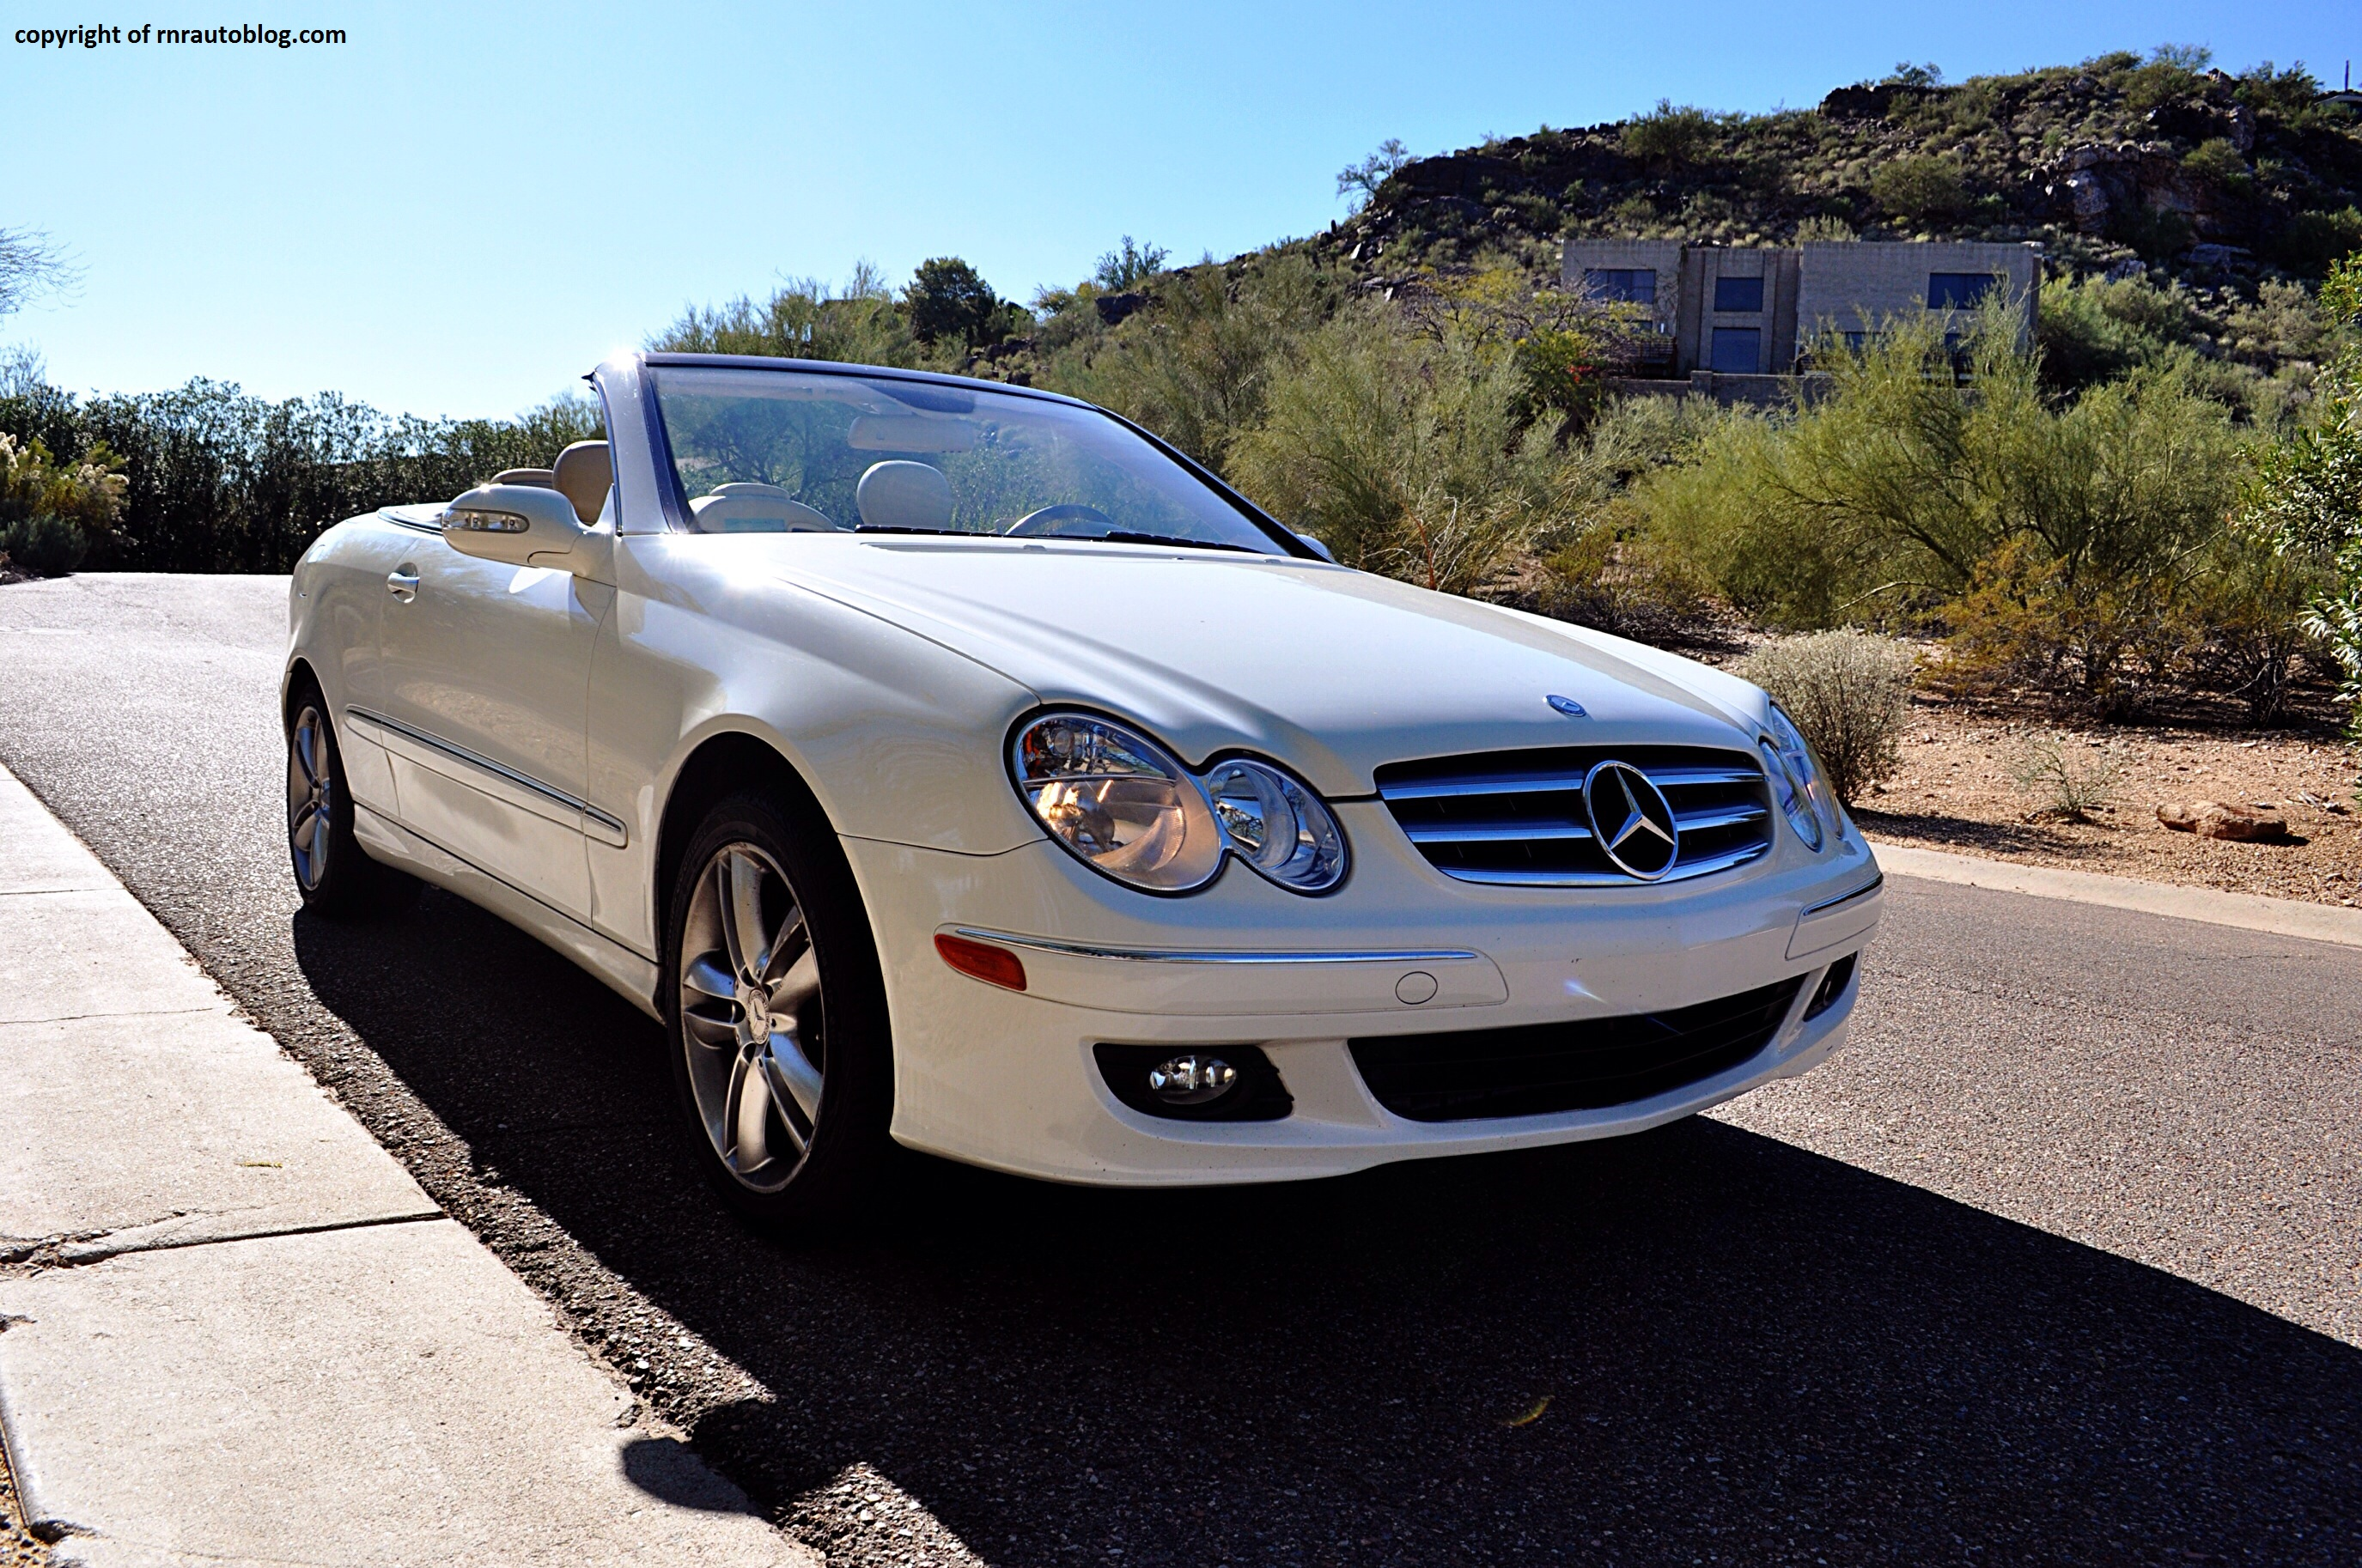 2008 mercedes benz clk350 convertible review rnr for Mercedes benz clk350 convertible